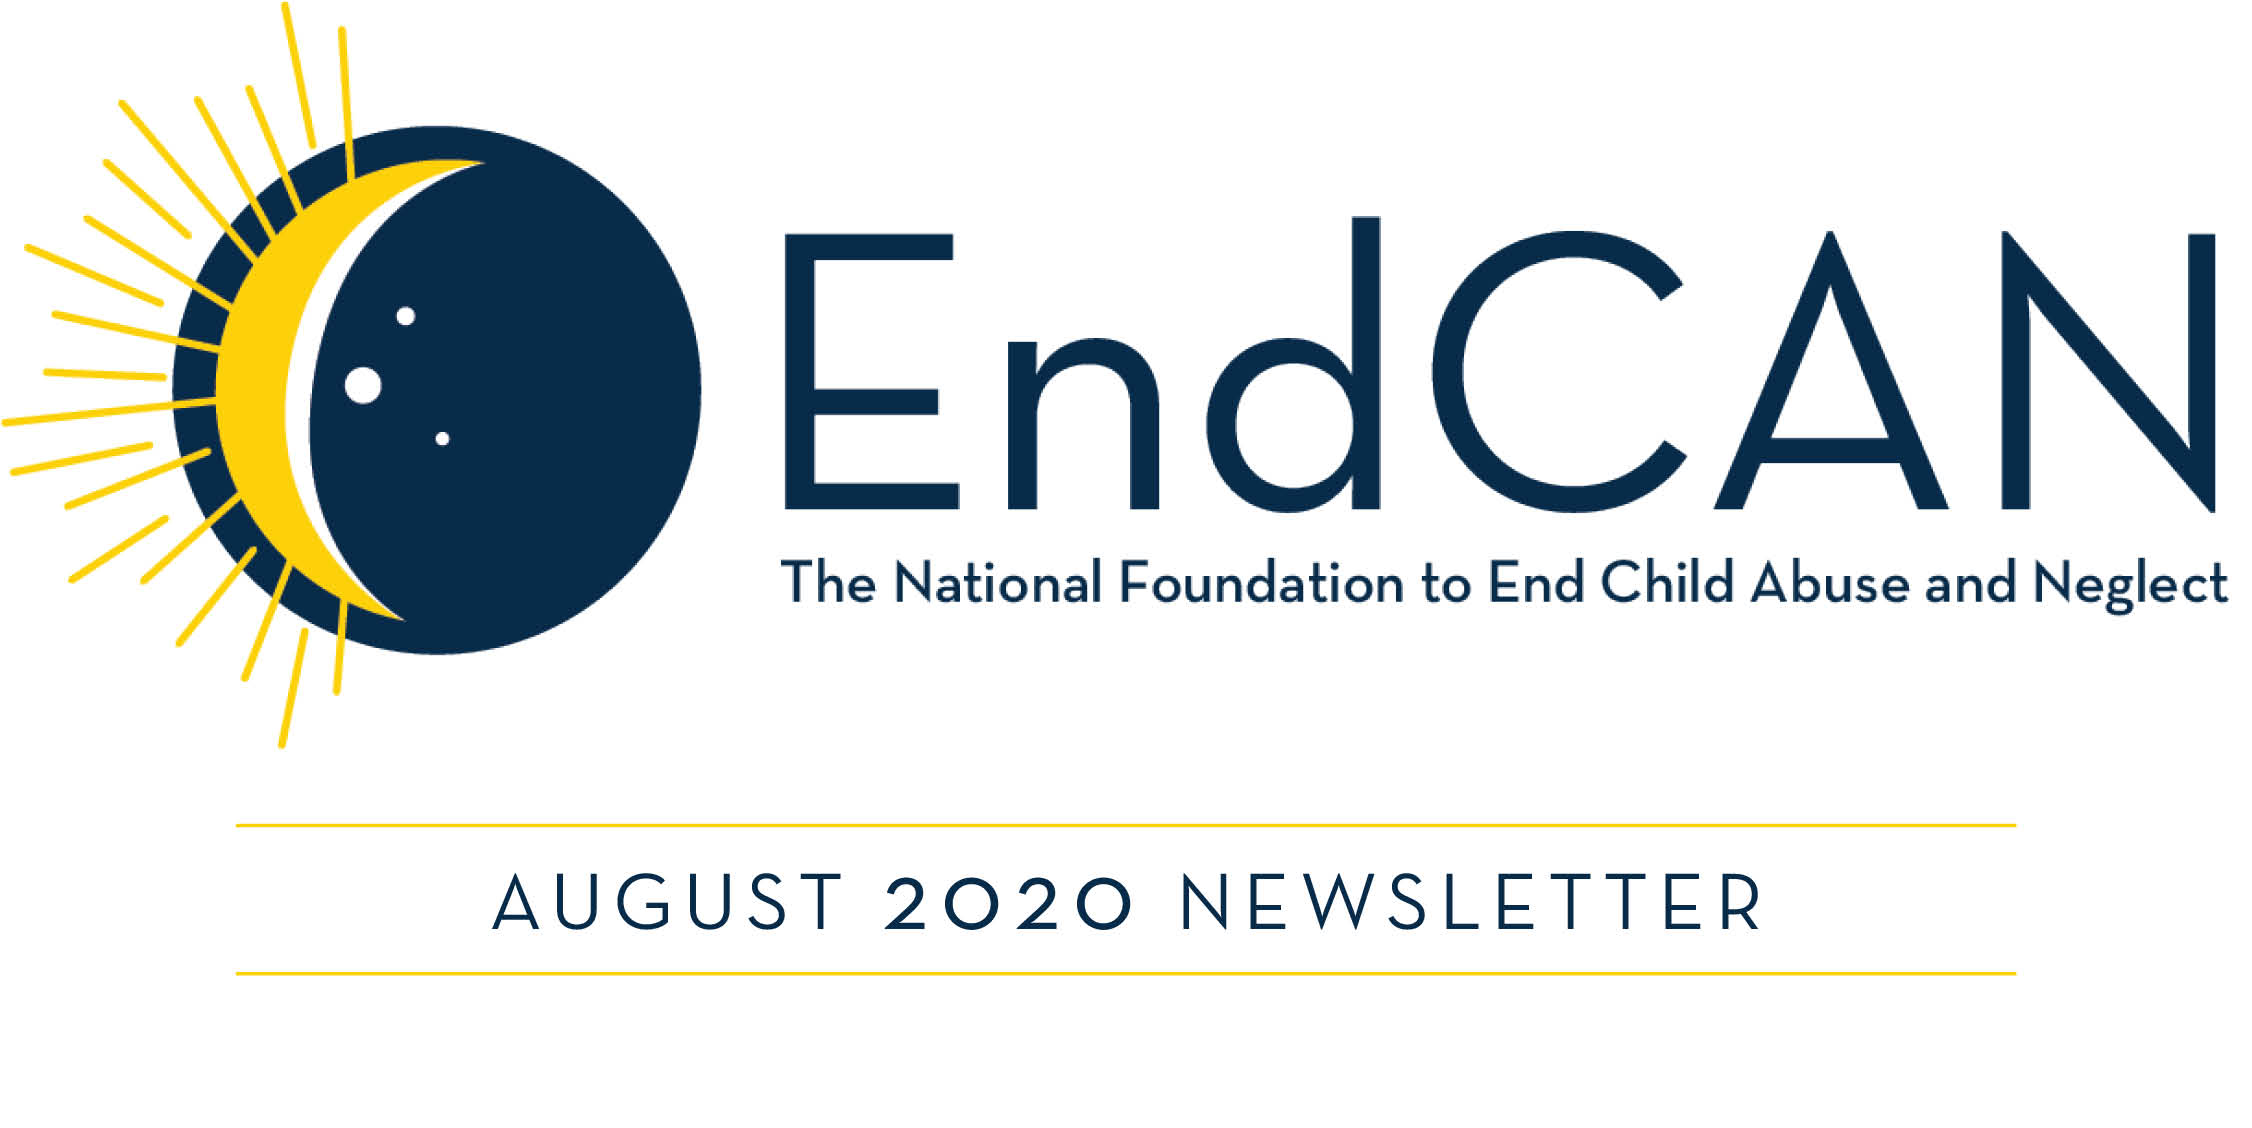 EndCAN The National Foundation to End Child Abuse and Neglect logo. August 2020 Newsletter